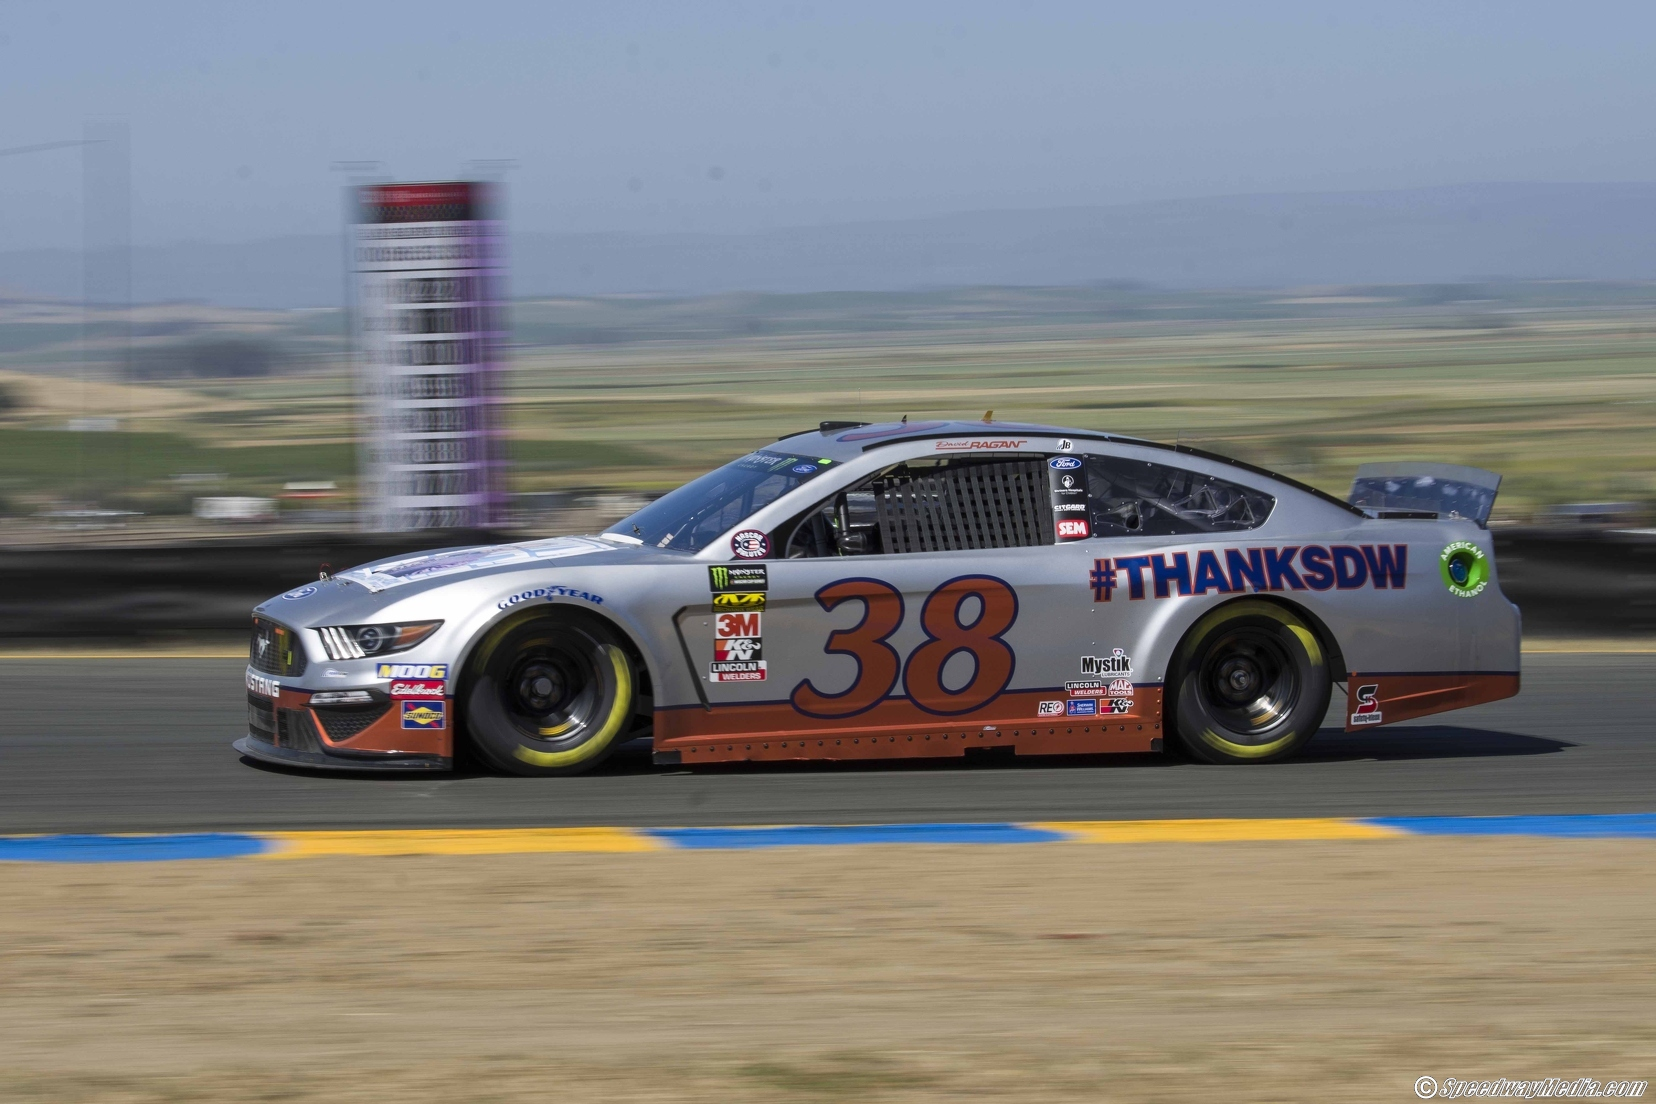 David Ragan practices on Friday in his #ThanksDW Mustang at Sonoma Raceway. Photo courtesy of Patrick Sue-Chan for Speedway Media.